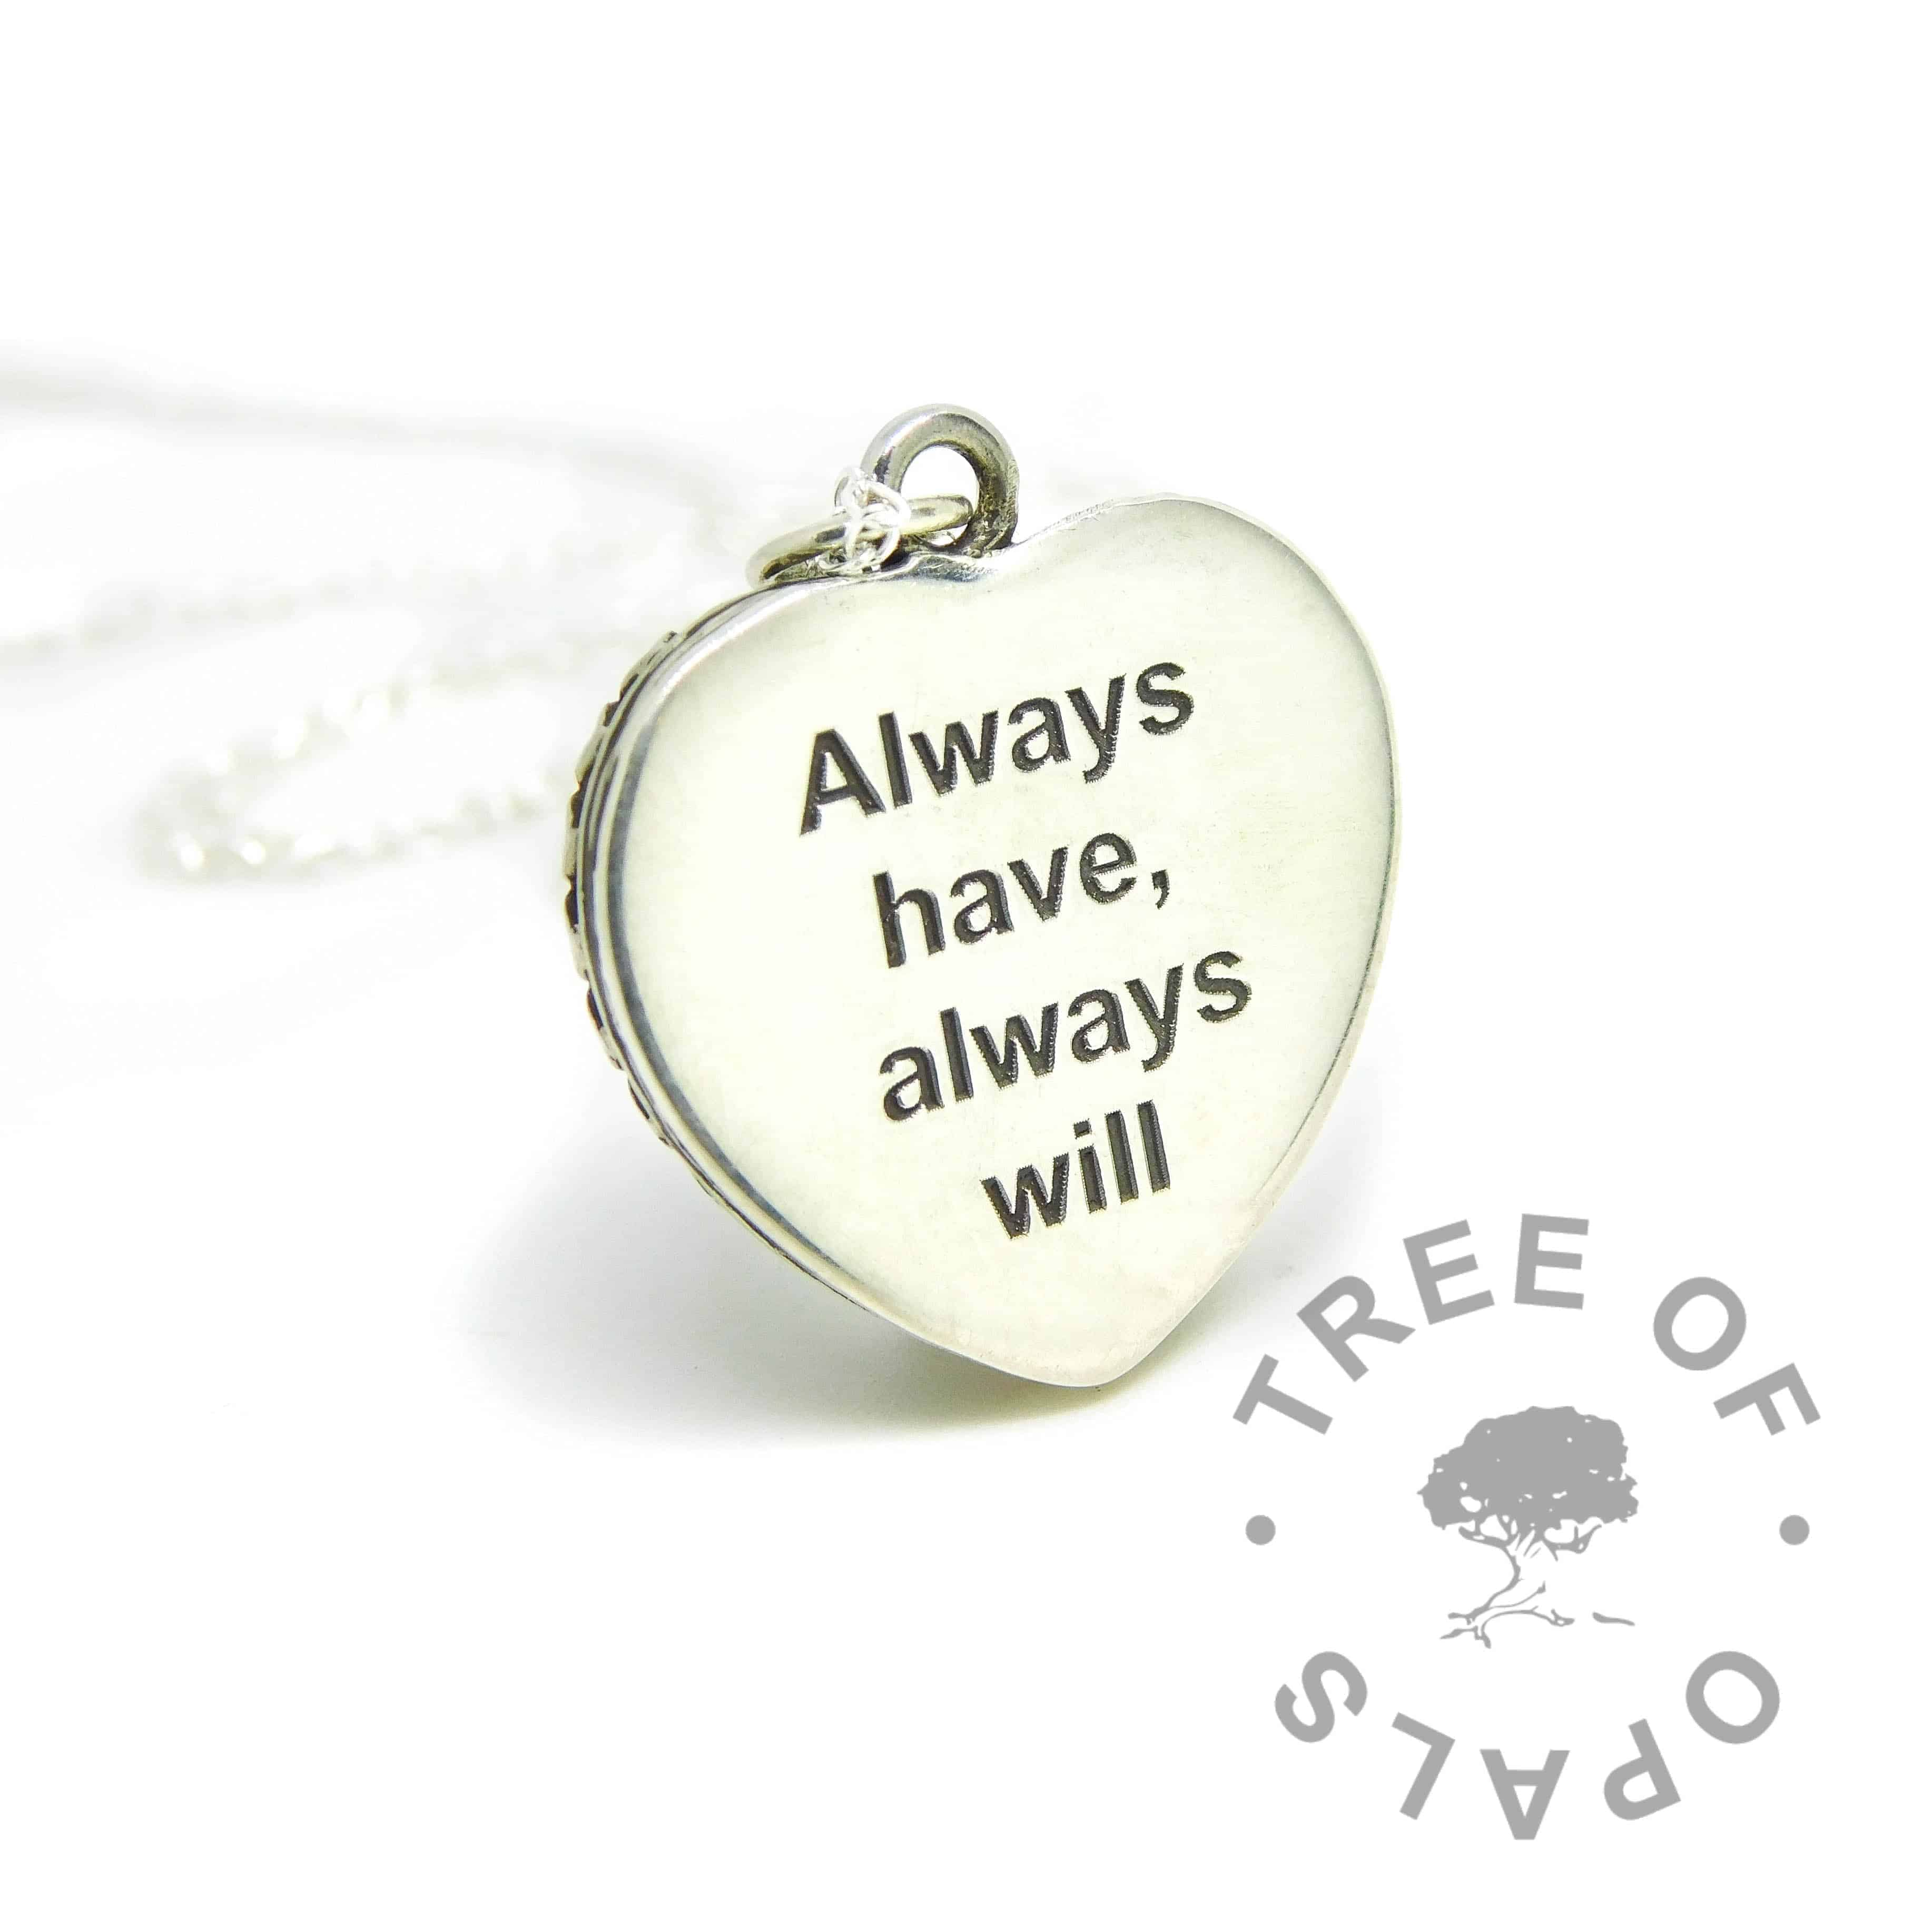 heart necklace engraved backplate in Arial font with Always have, always will